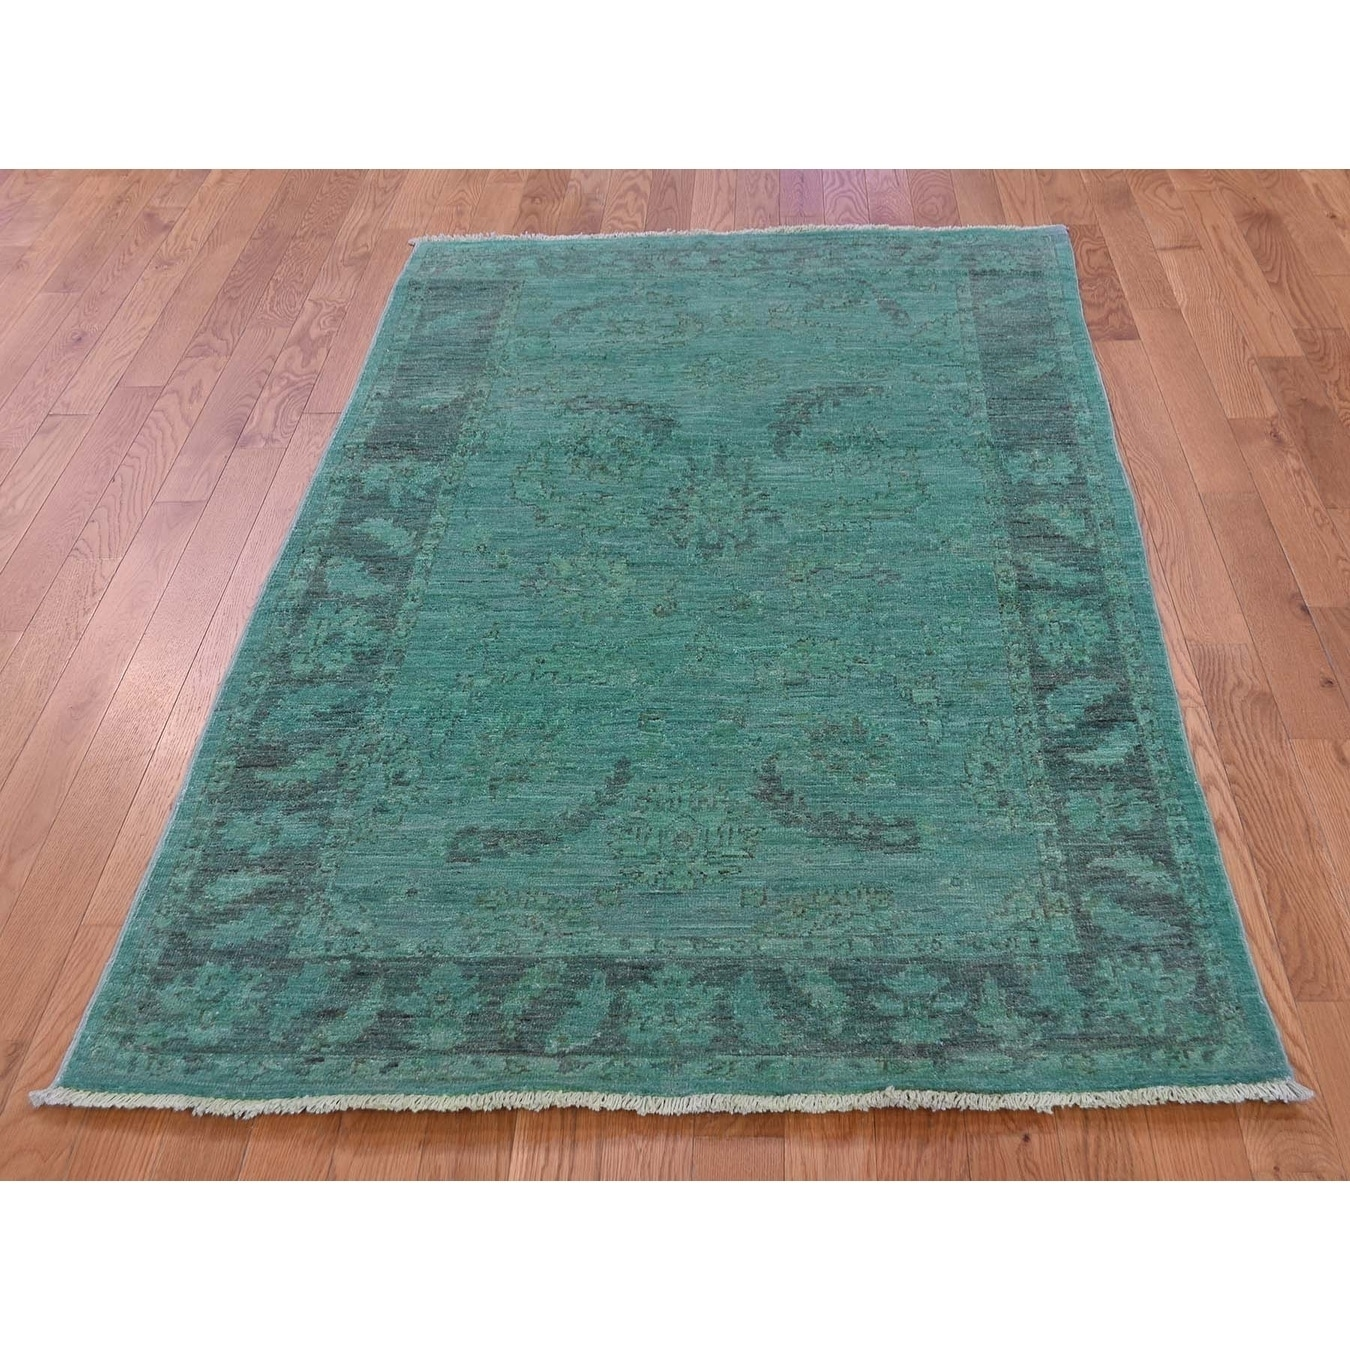 Hand Knotted Teal Overdyed & Vintage with Wool Oriental Rug - 310 x 61